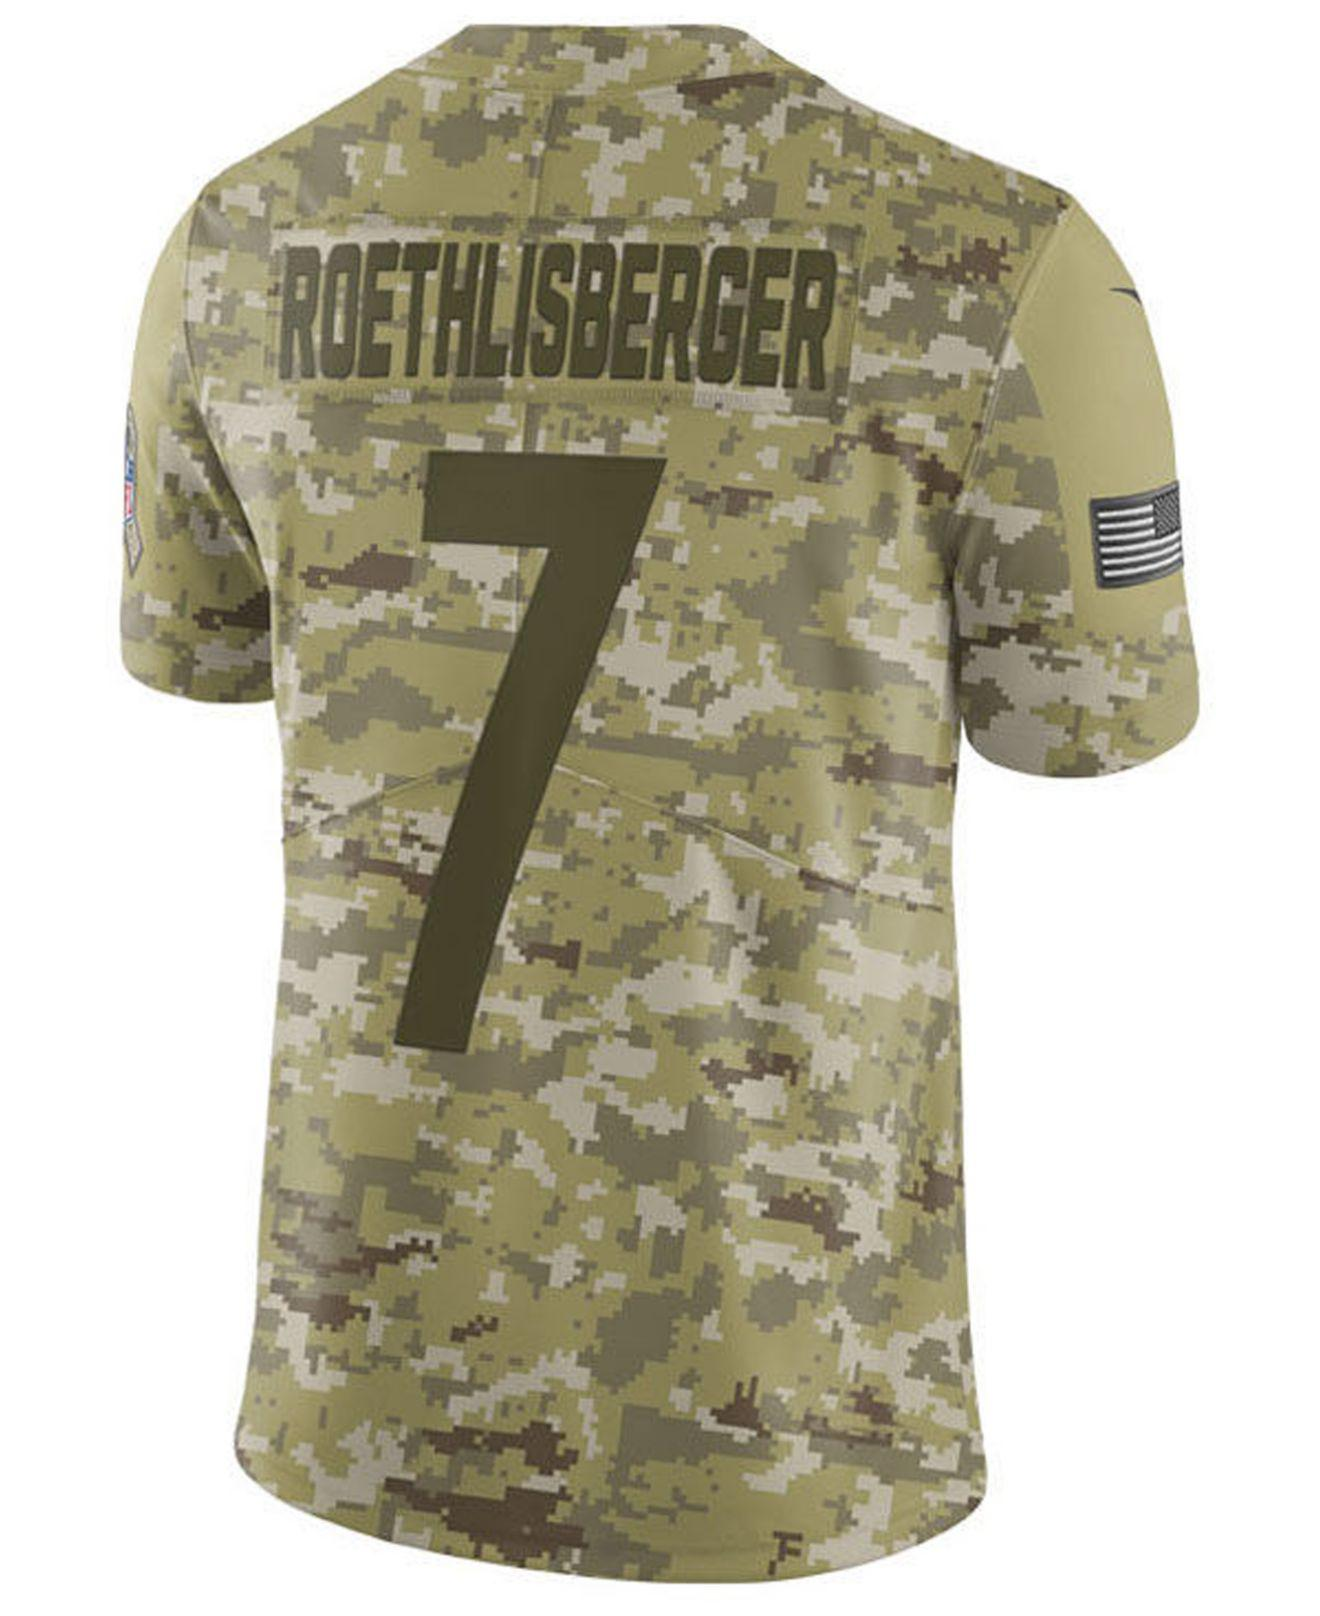 1db94523d Lyst - Nike Ben Roethlisberger Pittsburgh Steelers Salute To Service Jersey  2018 in Green for Men